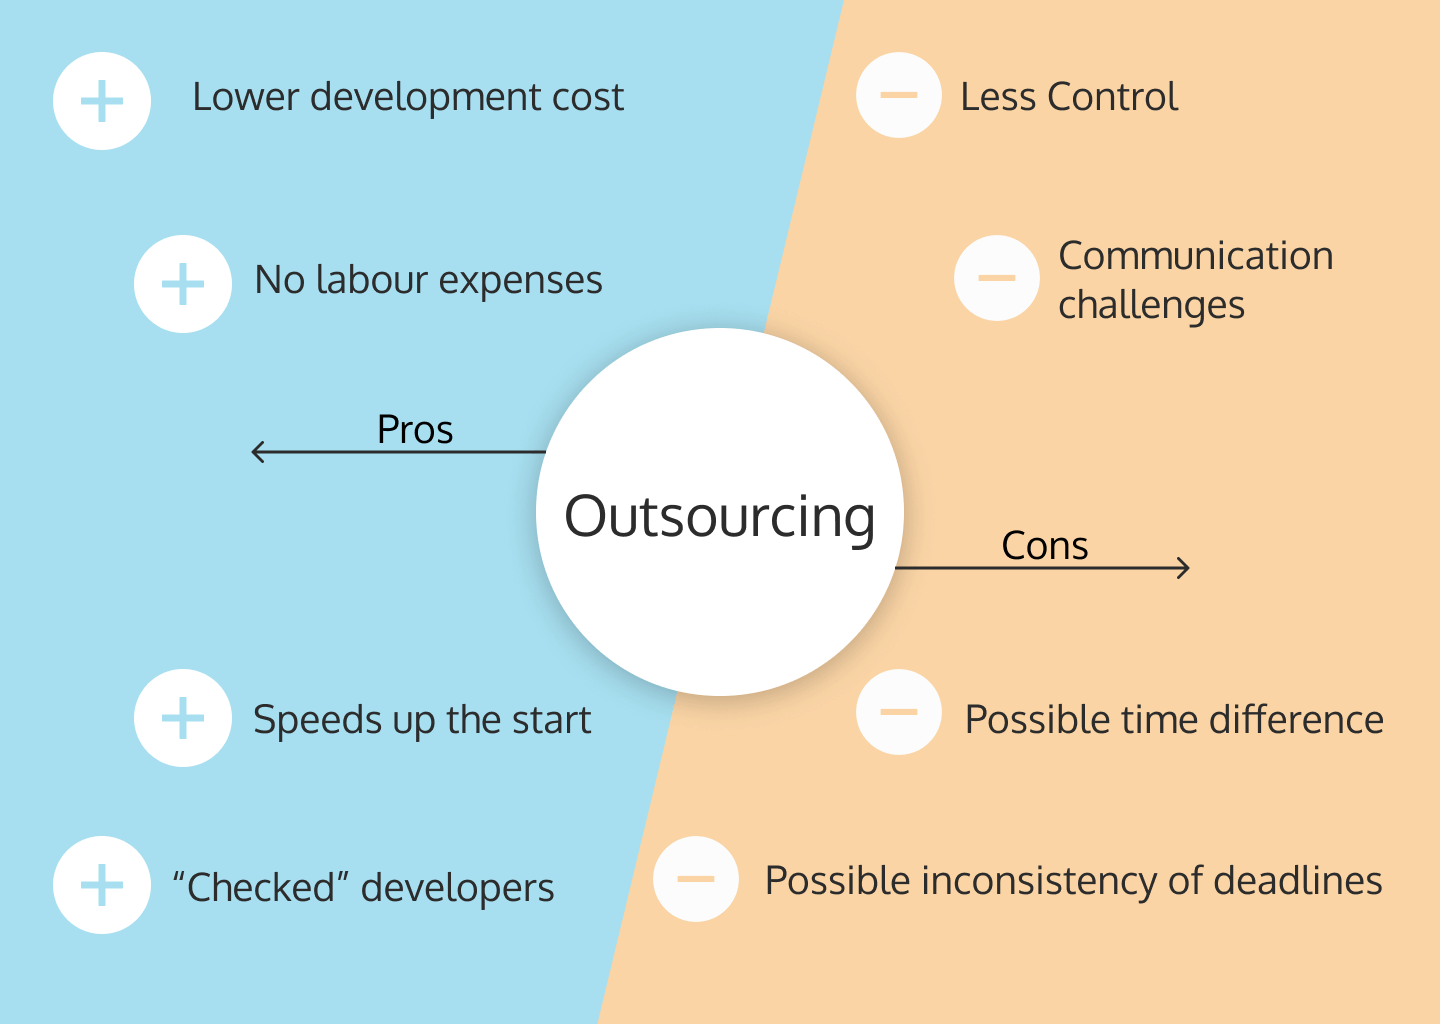 How to create an online marketplace: Pros and Cons of outsourcing